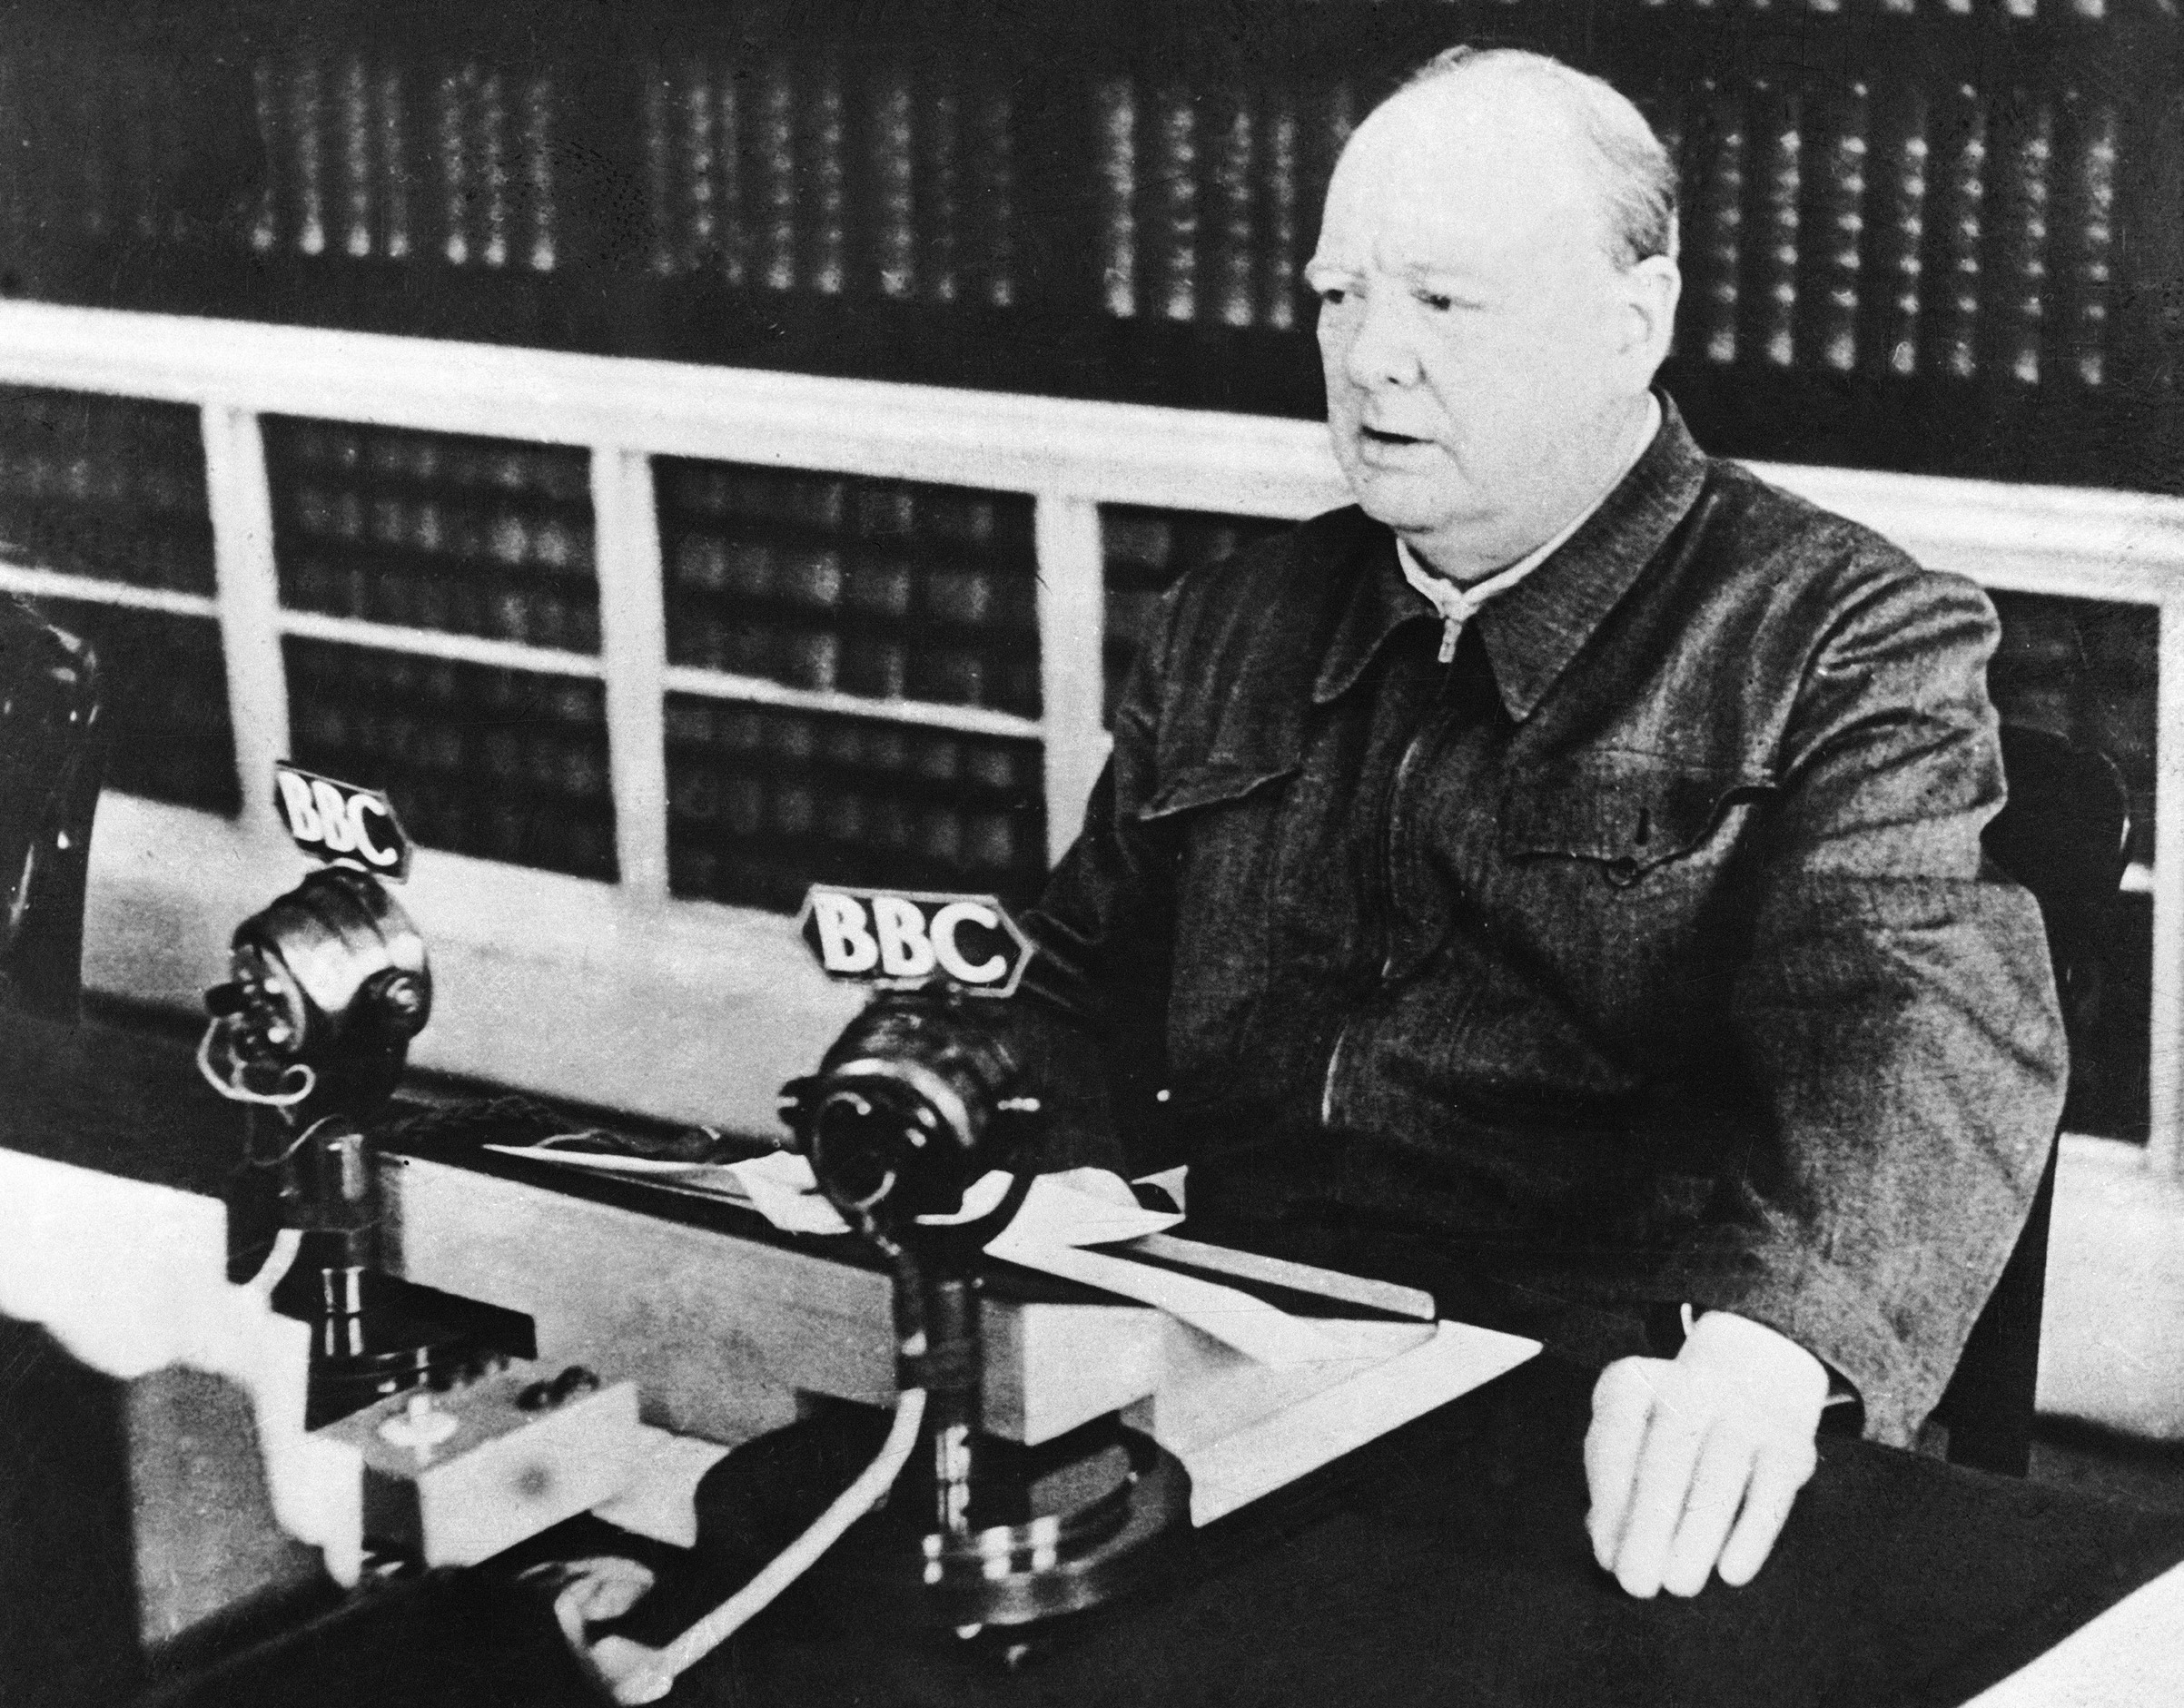 British Prime Minister Winston Churchill delivering his first radio broadcast as Prime Minister on May 13, 1940.